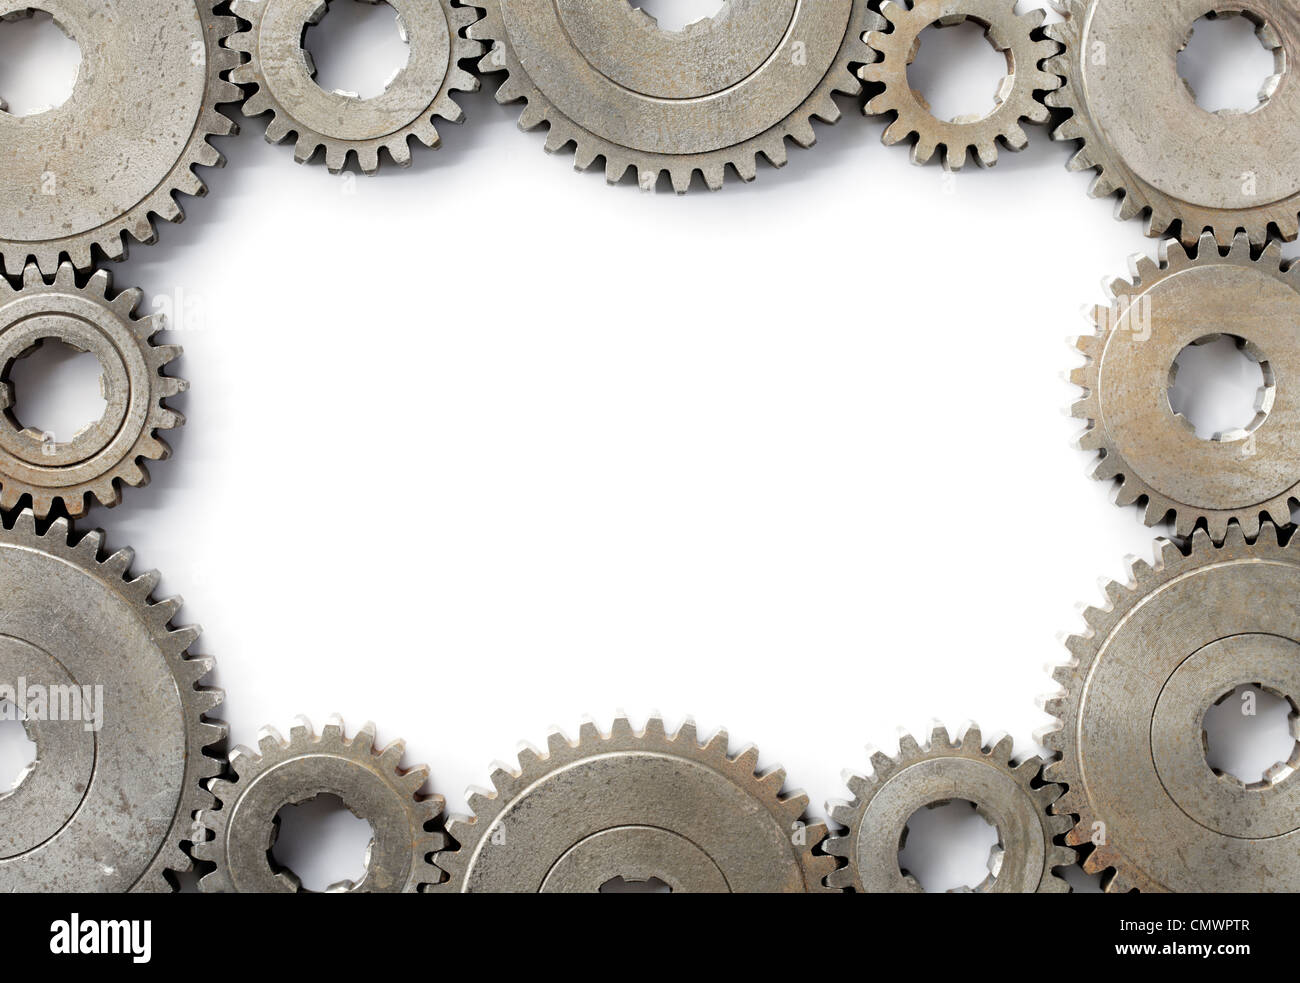 Background image with a frame made of old cog gear wheels. - Stock Image